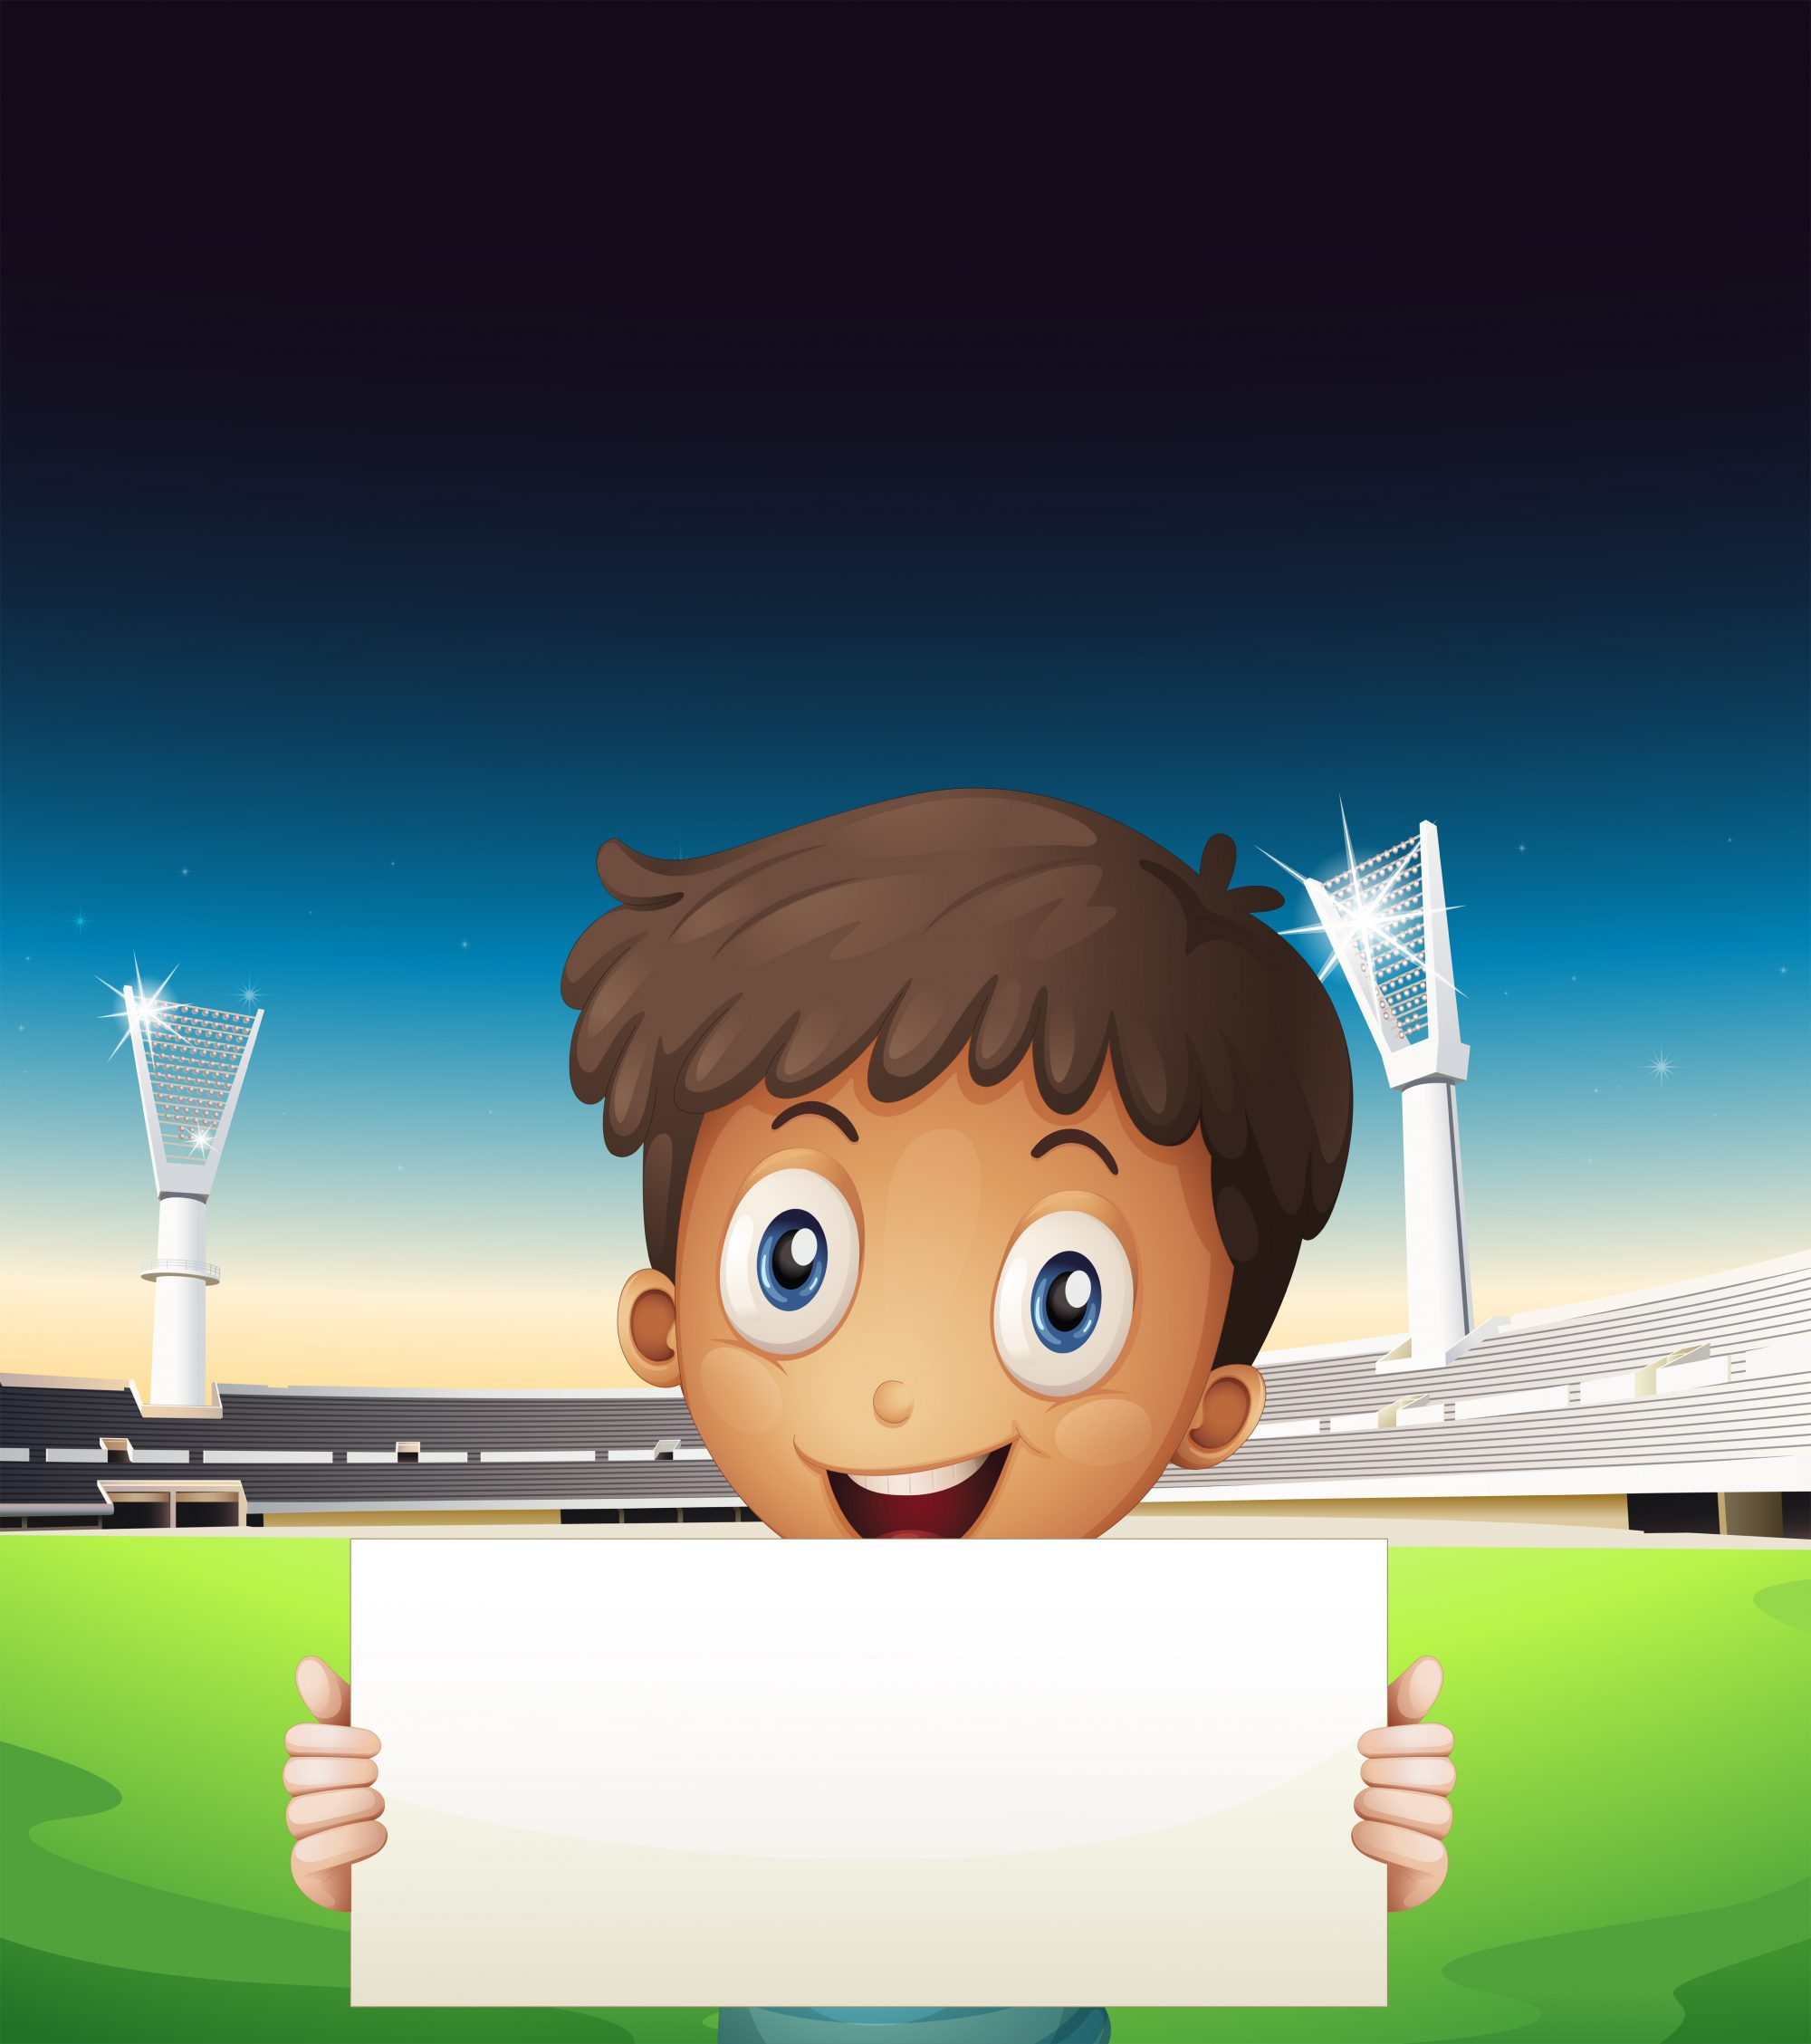 A boy at the stadium holding an empty cardboard